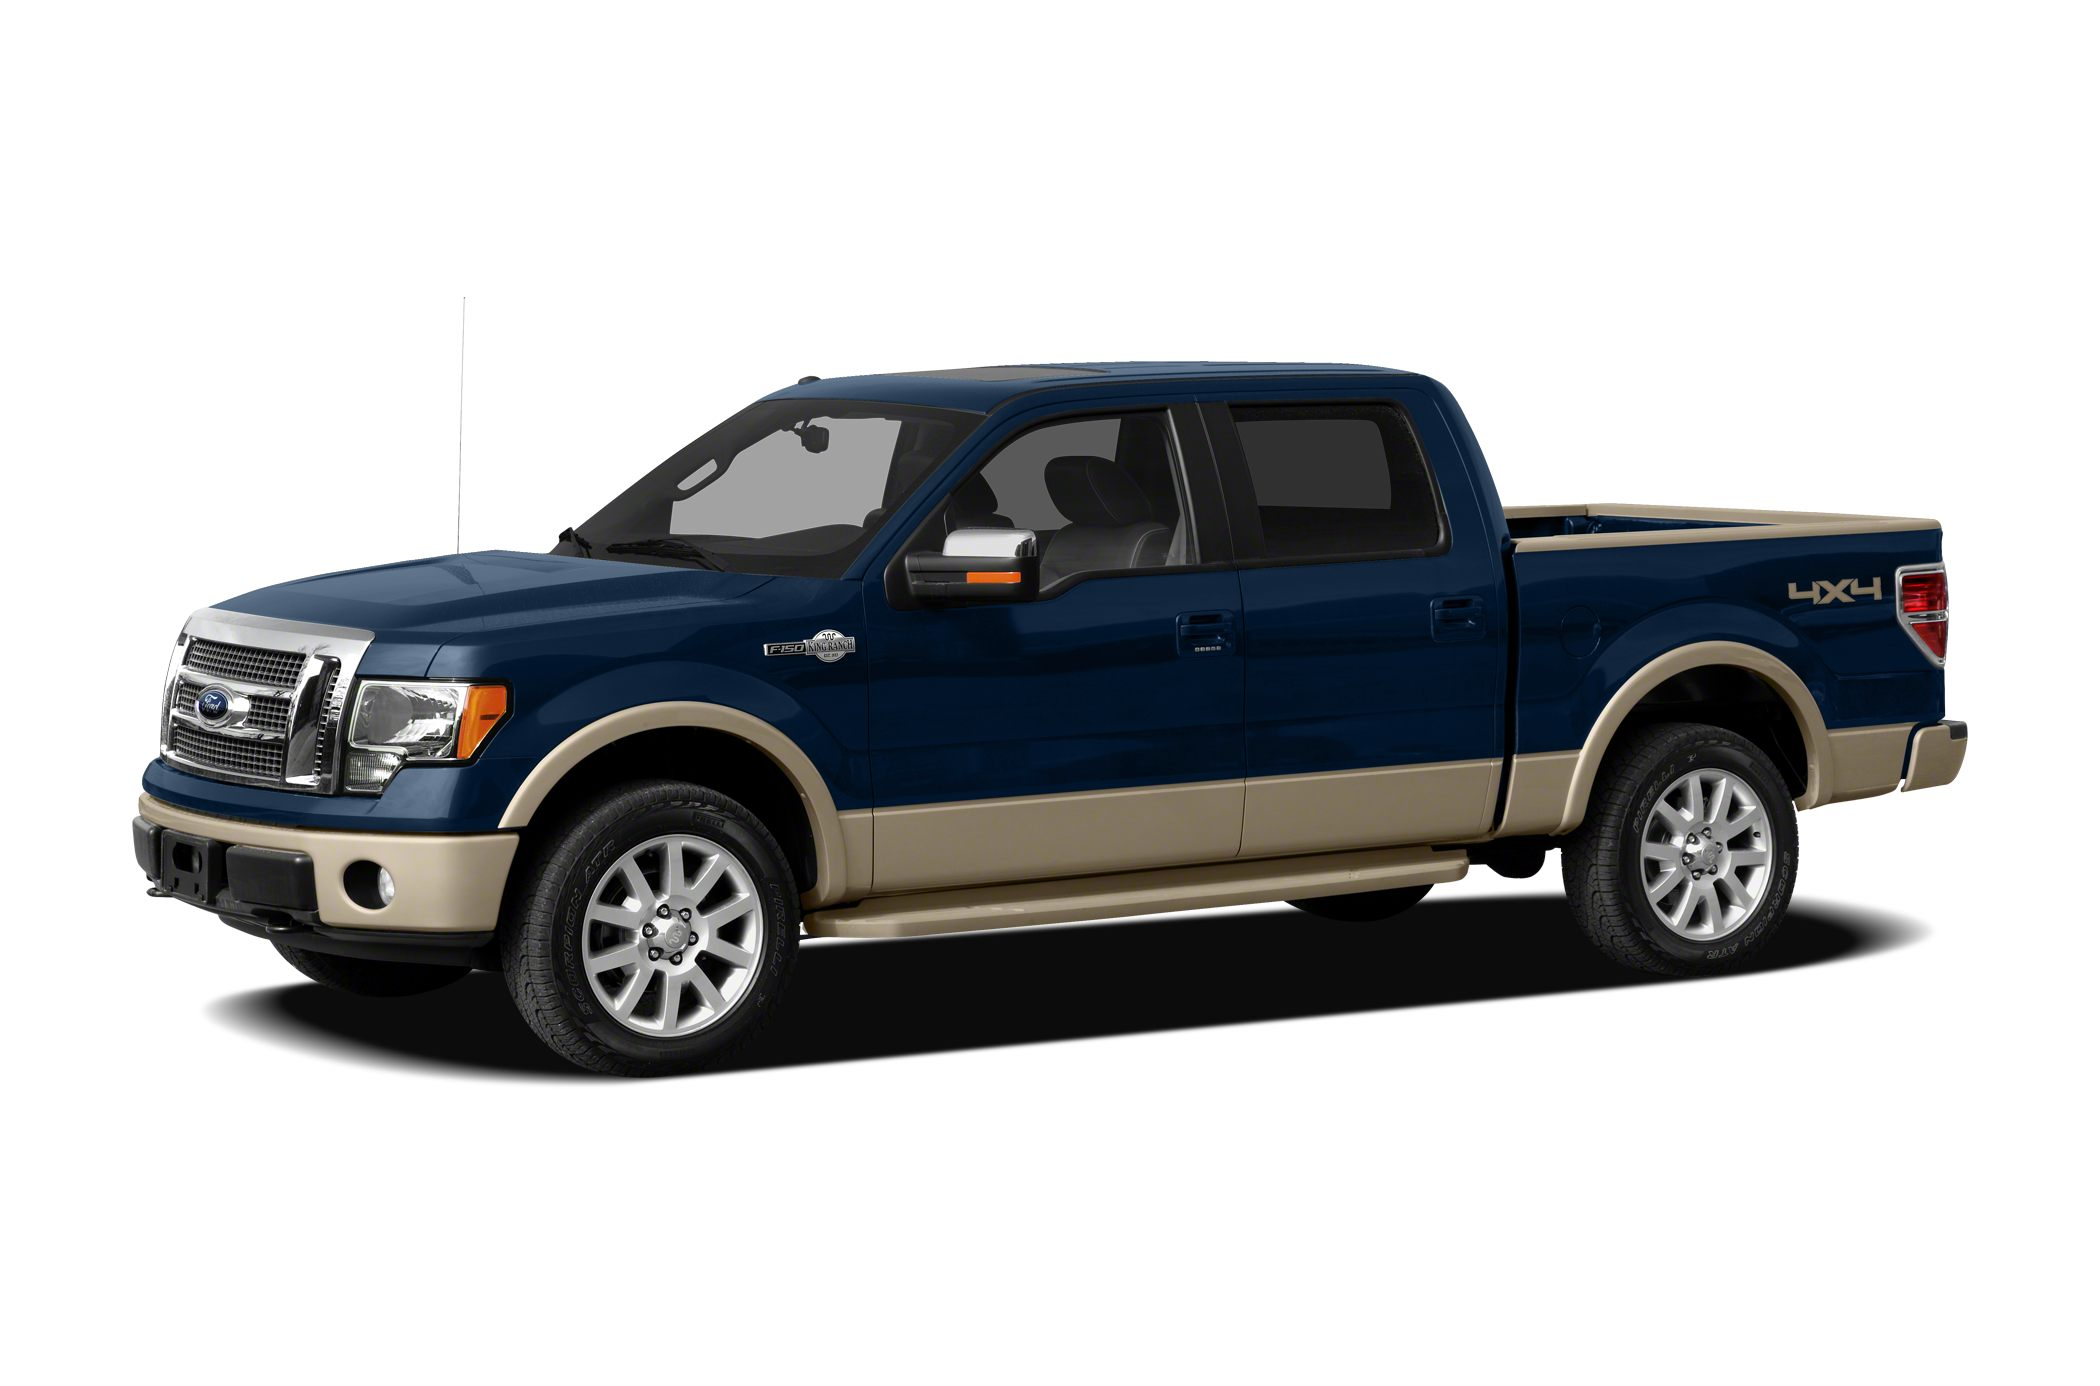 2011 Ford F150 King Ranch Crew Cab Pickup for sale in New Albany for $28,529 with 100,426 miles